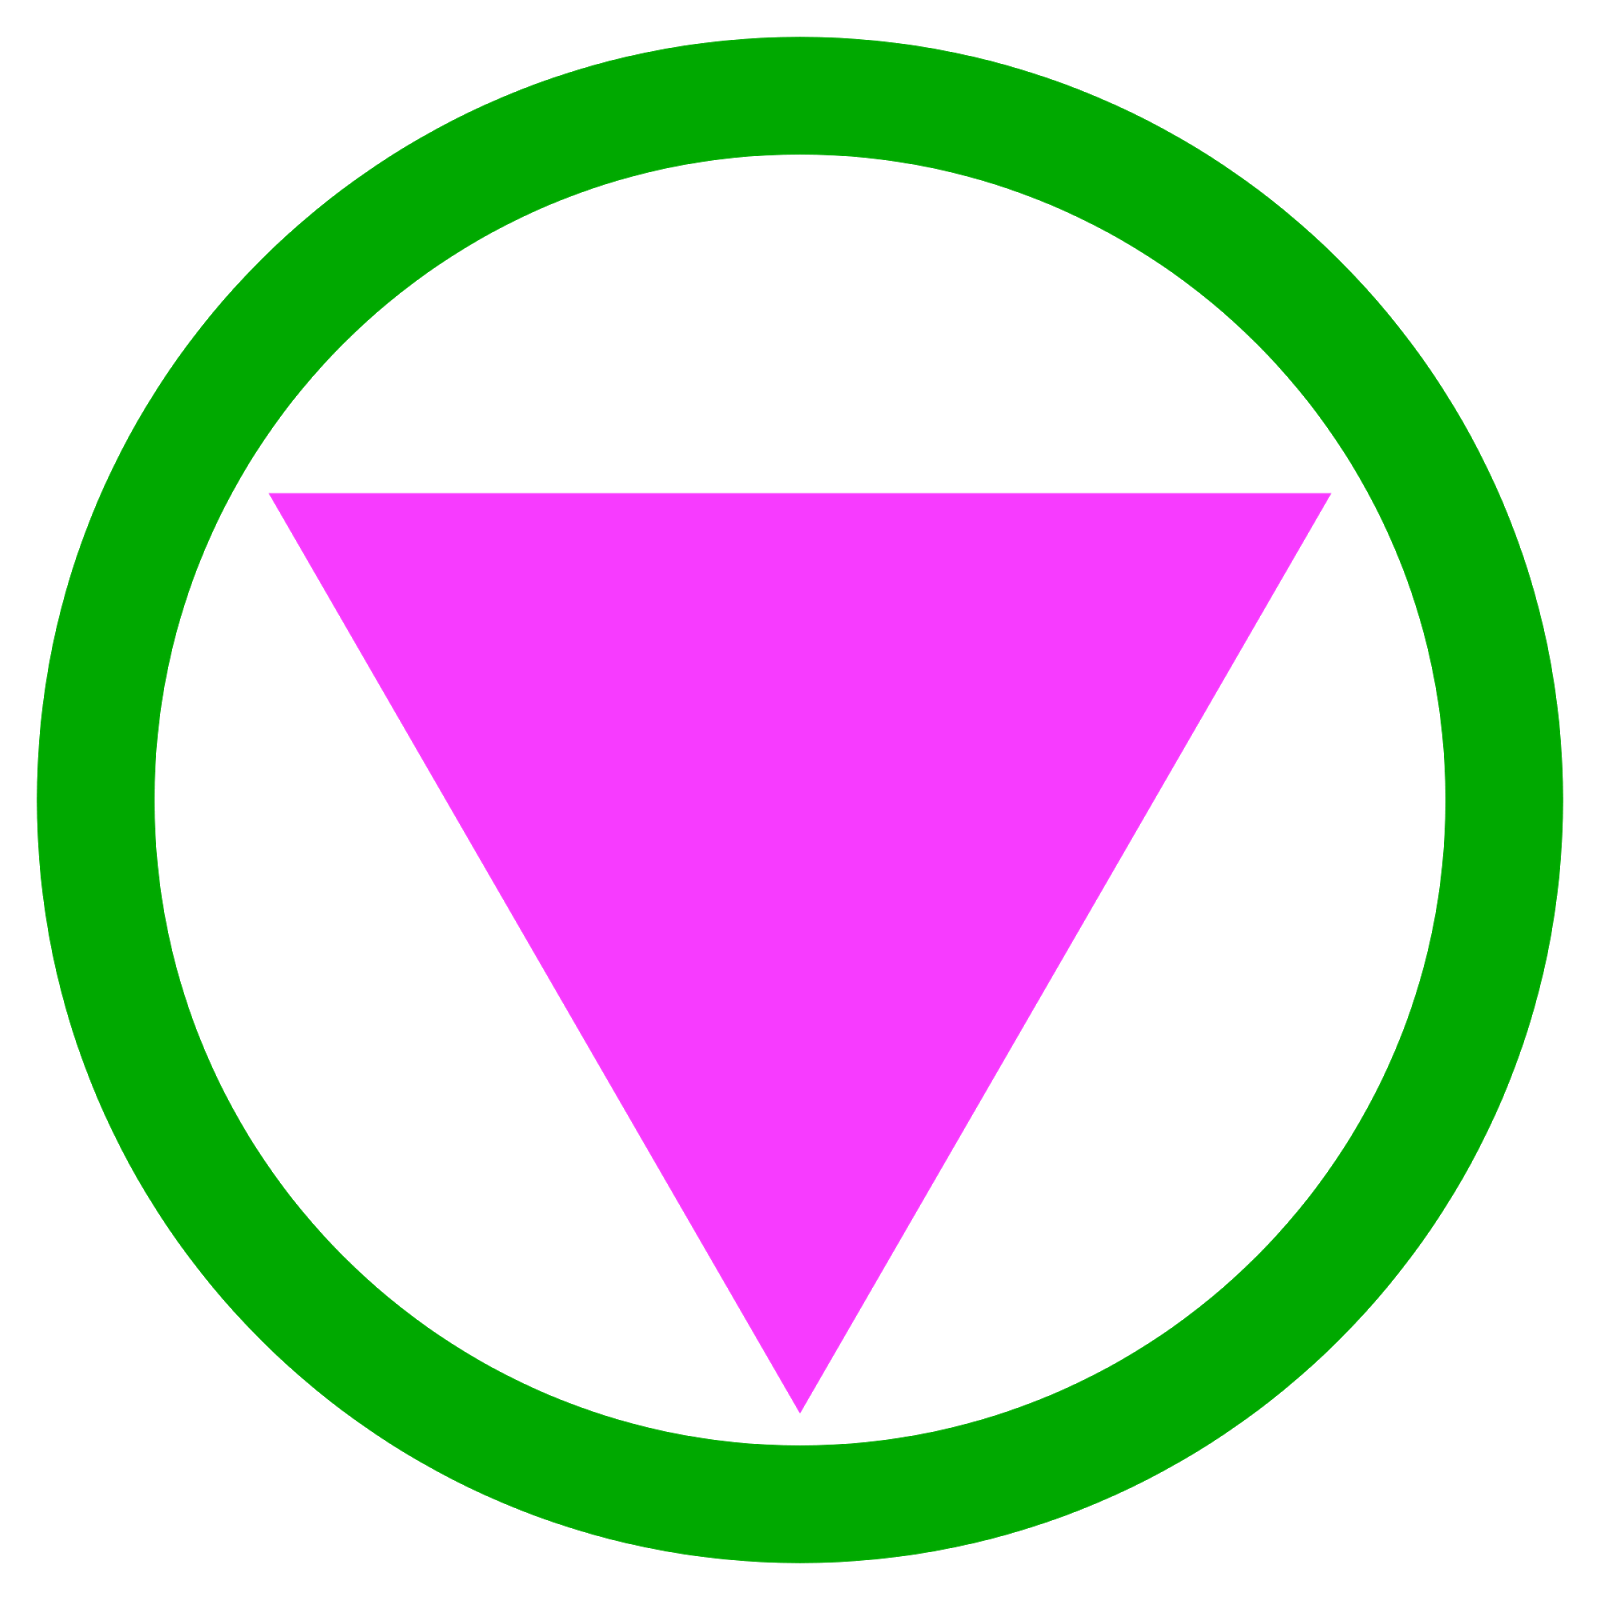 ResistanceMedia : 'Safe Space' Symbol Closely Resembles ...